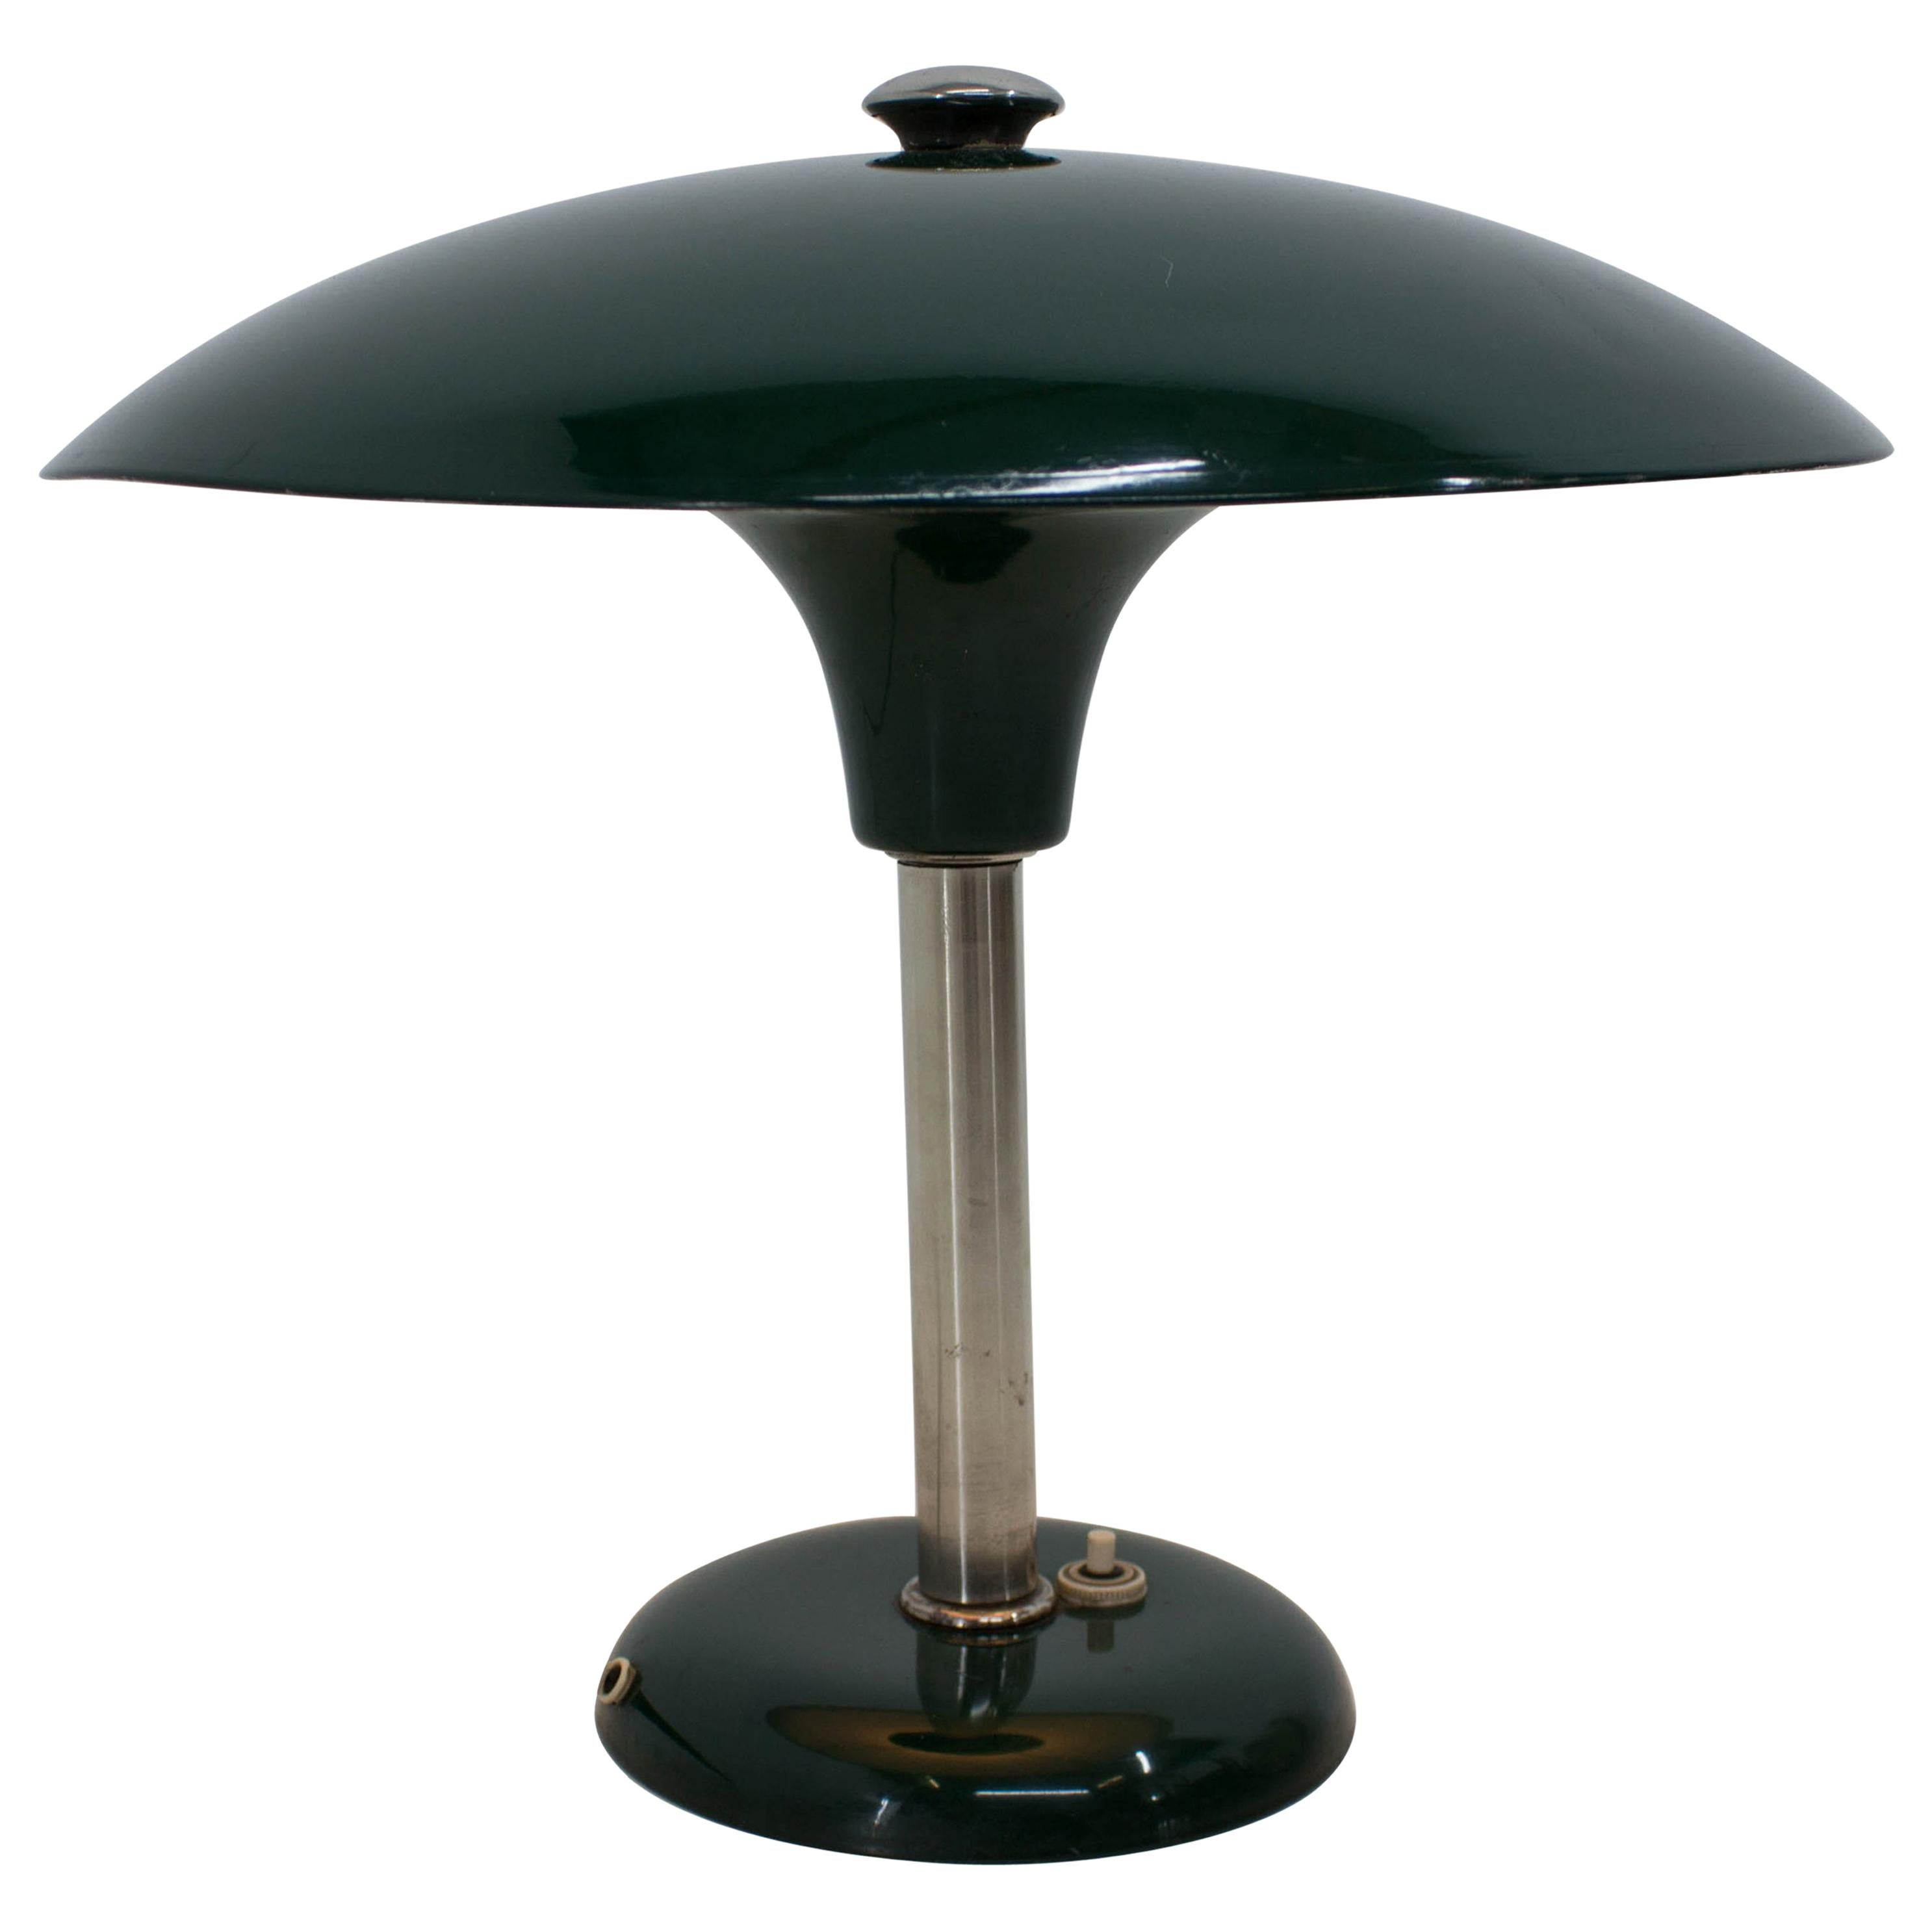 Green Art Deco Bauhaus Table Lamp by Max Schumacher, 1930s, Germany